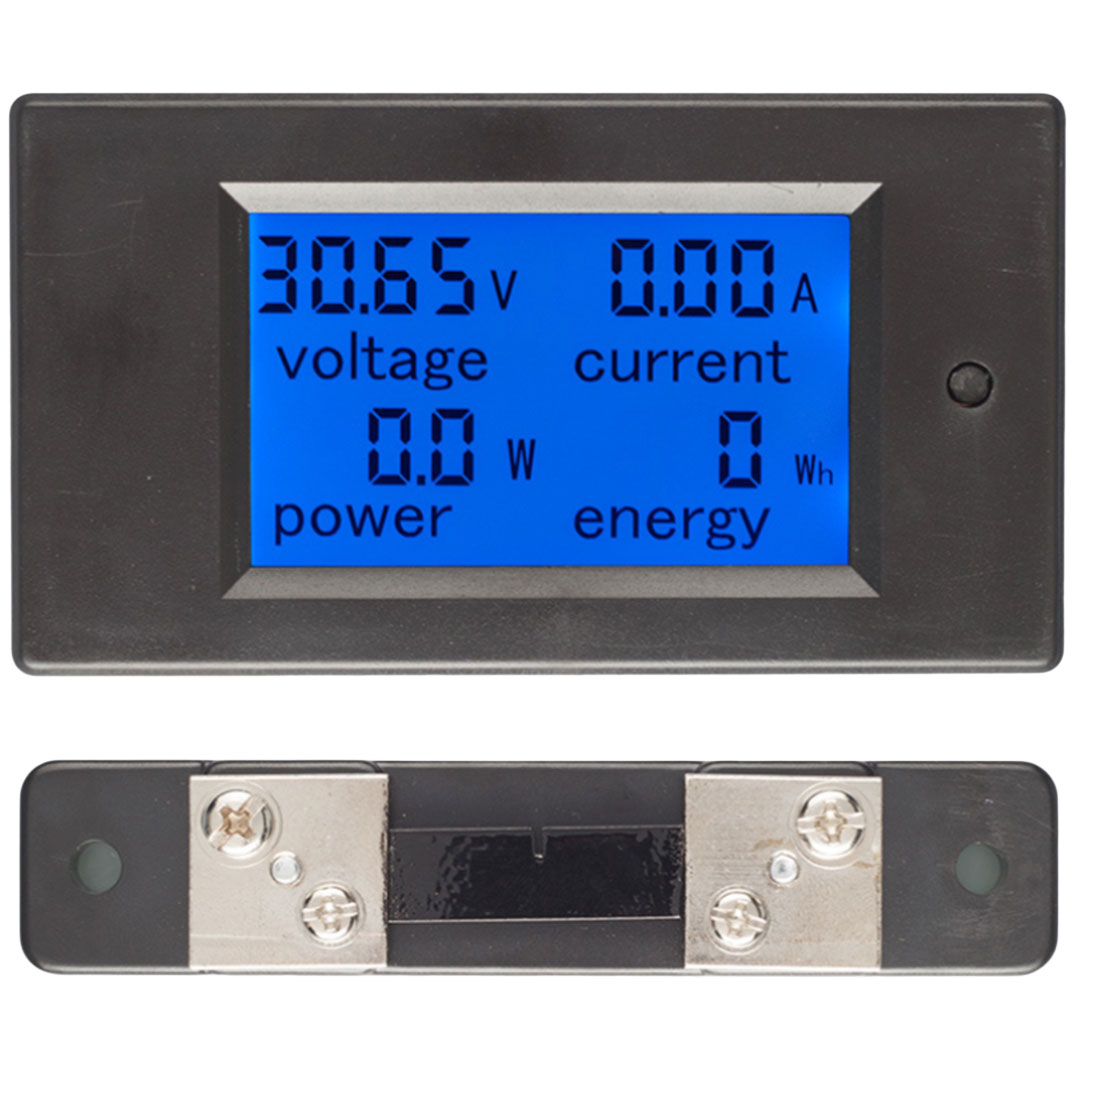 50a Shunt Shop For Cheap Dc 6.5-100v 50a Lcd Combo Meter Voltage Current Kwh Watt Panel Meter 12v 24v 48v Battery Power Monitoring Electrical Instruments